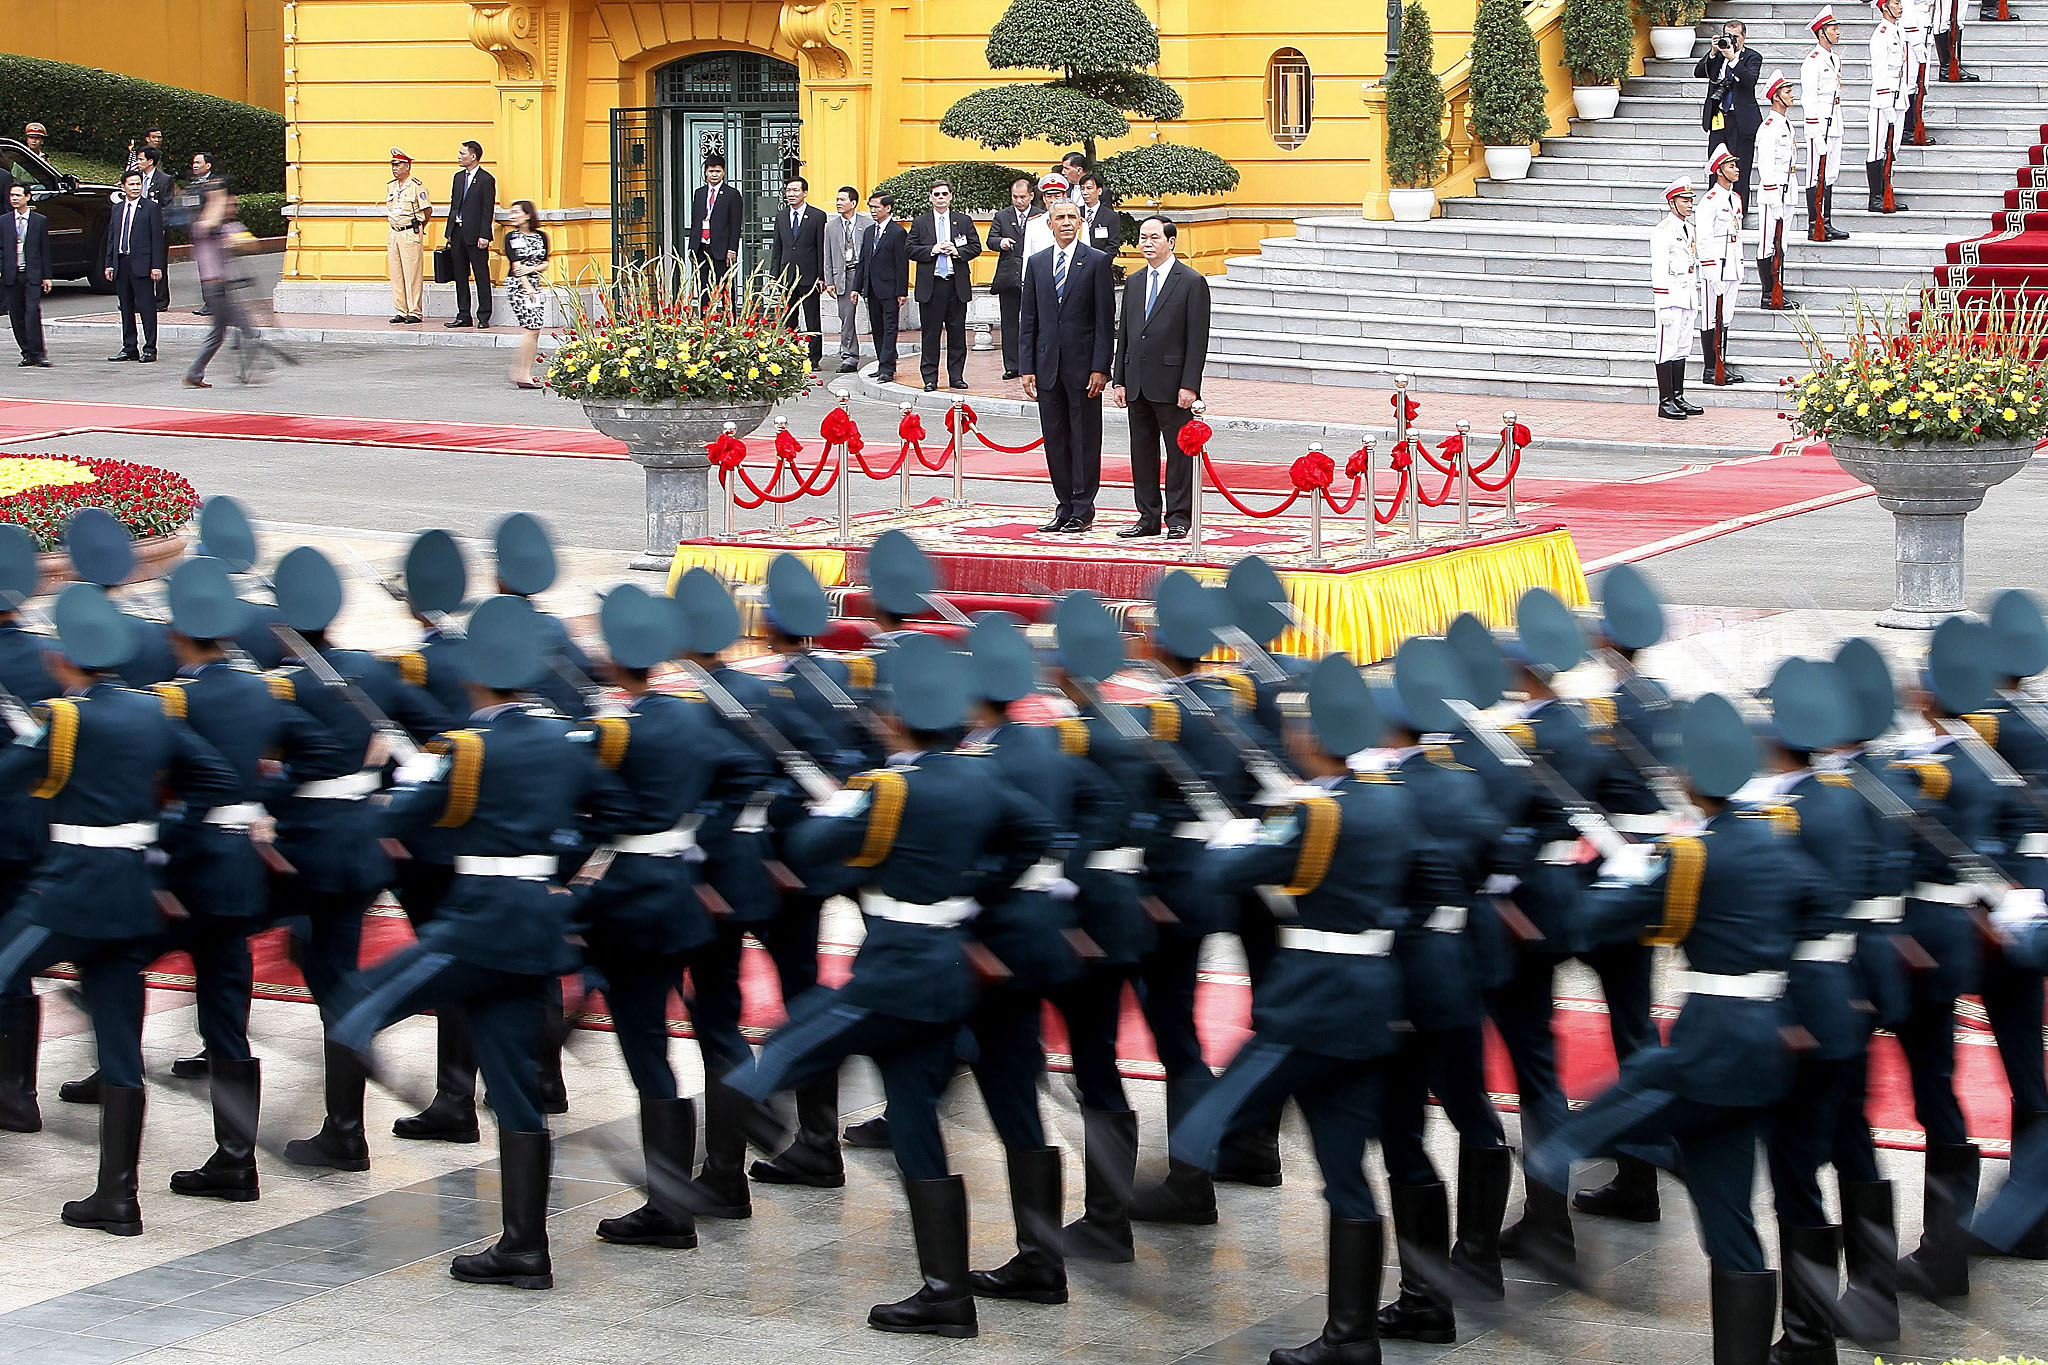 epa05324583 US President Barack Obama (C-L) and Vietnam's President Tran Dai Quang (C-R) review an honor guard at the Presidential Palace in Hanoi, Vietnam, 23 May 2016. US President Barack Obama visits Vietnam for the first time from 23 to 25 May 2016, making him the third US President to visit the South East Asian country since the end of the Vietnam War in 1975. During the first day of his visit Obama announced that the US will lift its arms embargo on weapon sales to Vietnam.  EPA/MINH HOANG